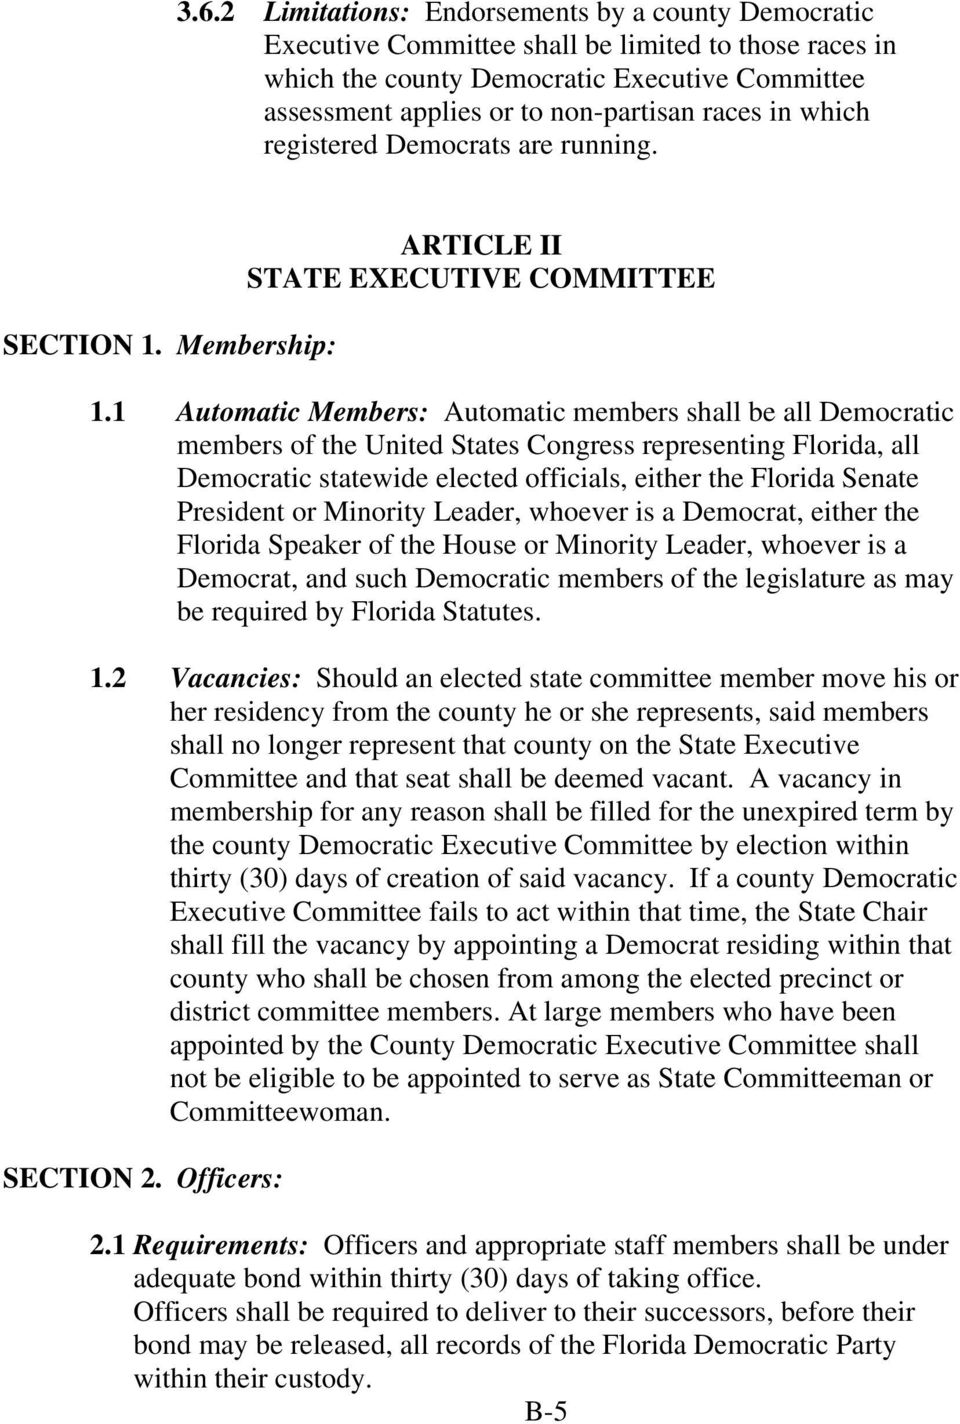 1 Automatic Members: Automatic members shall be all Democratic members of the United States Congress representing Florida, all Democratic statewide elected officials, either the Florida Senate